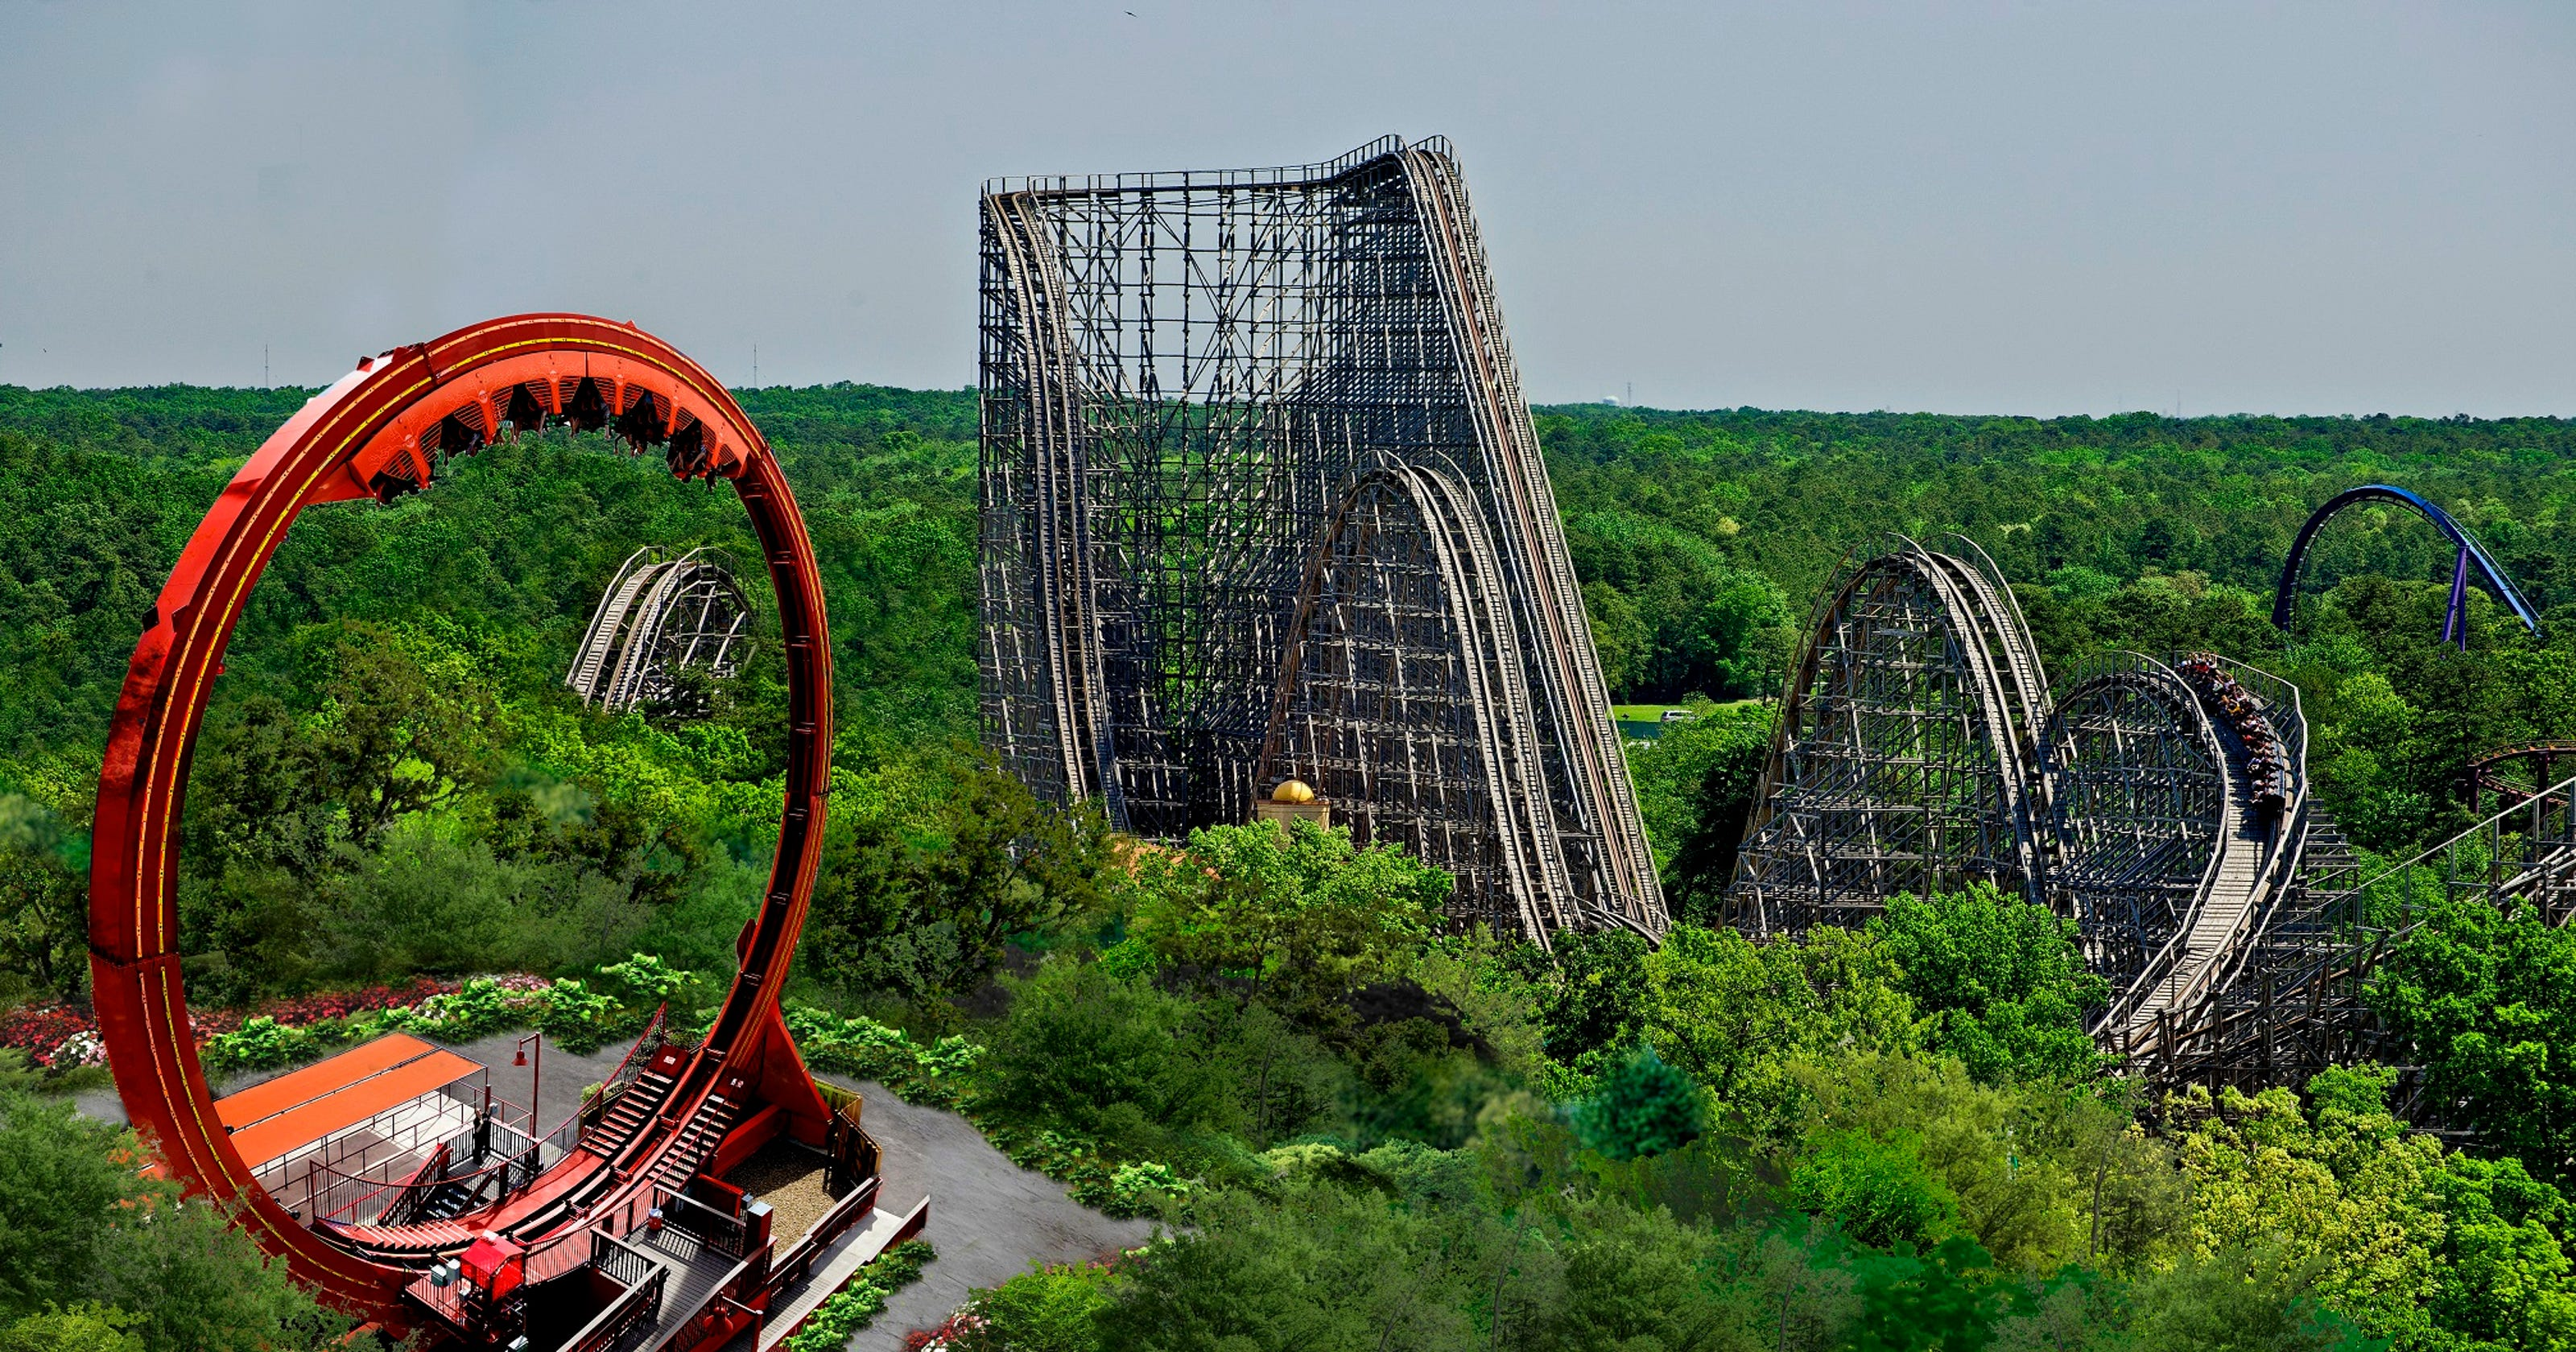 NJ Teens Disability Suit Against 6 Flags To Proceed